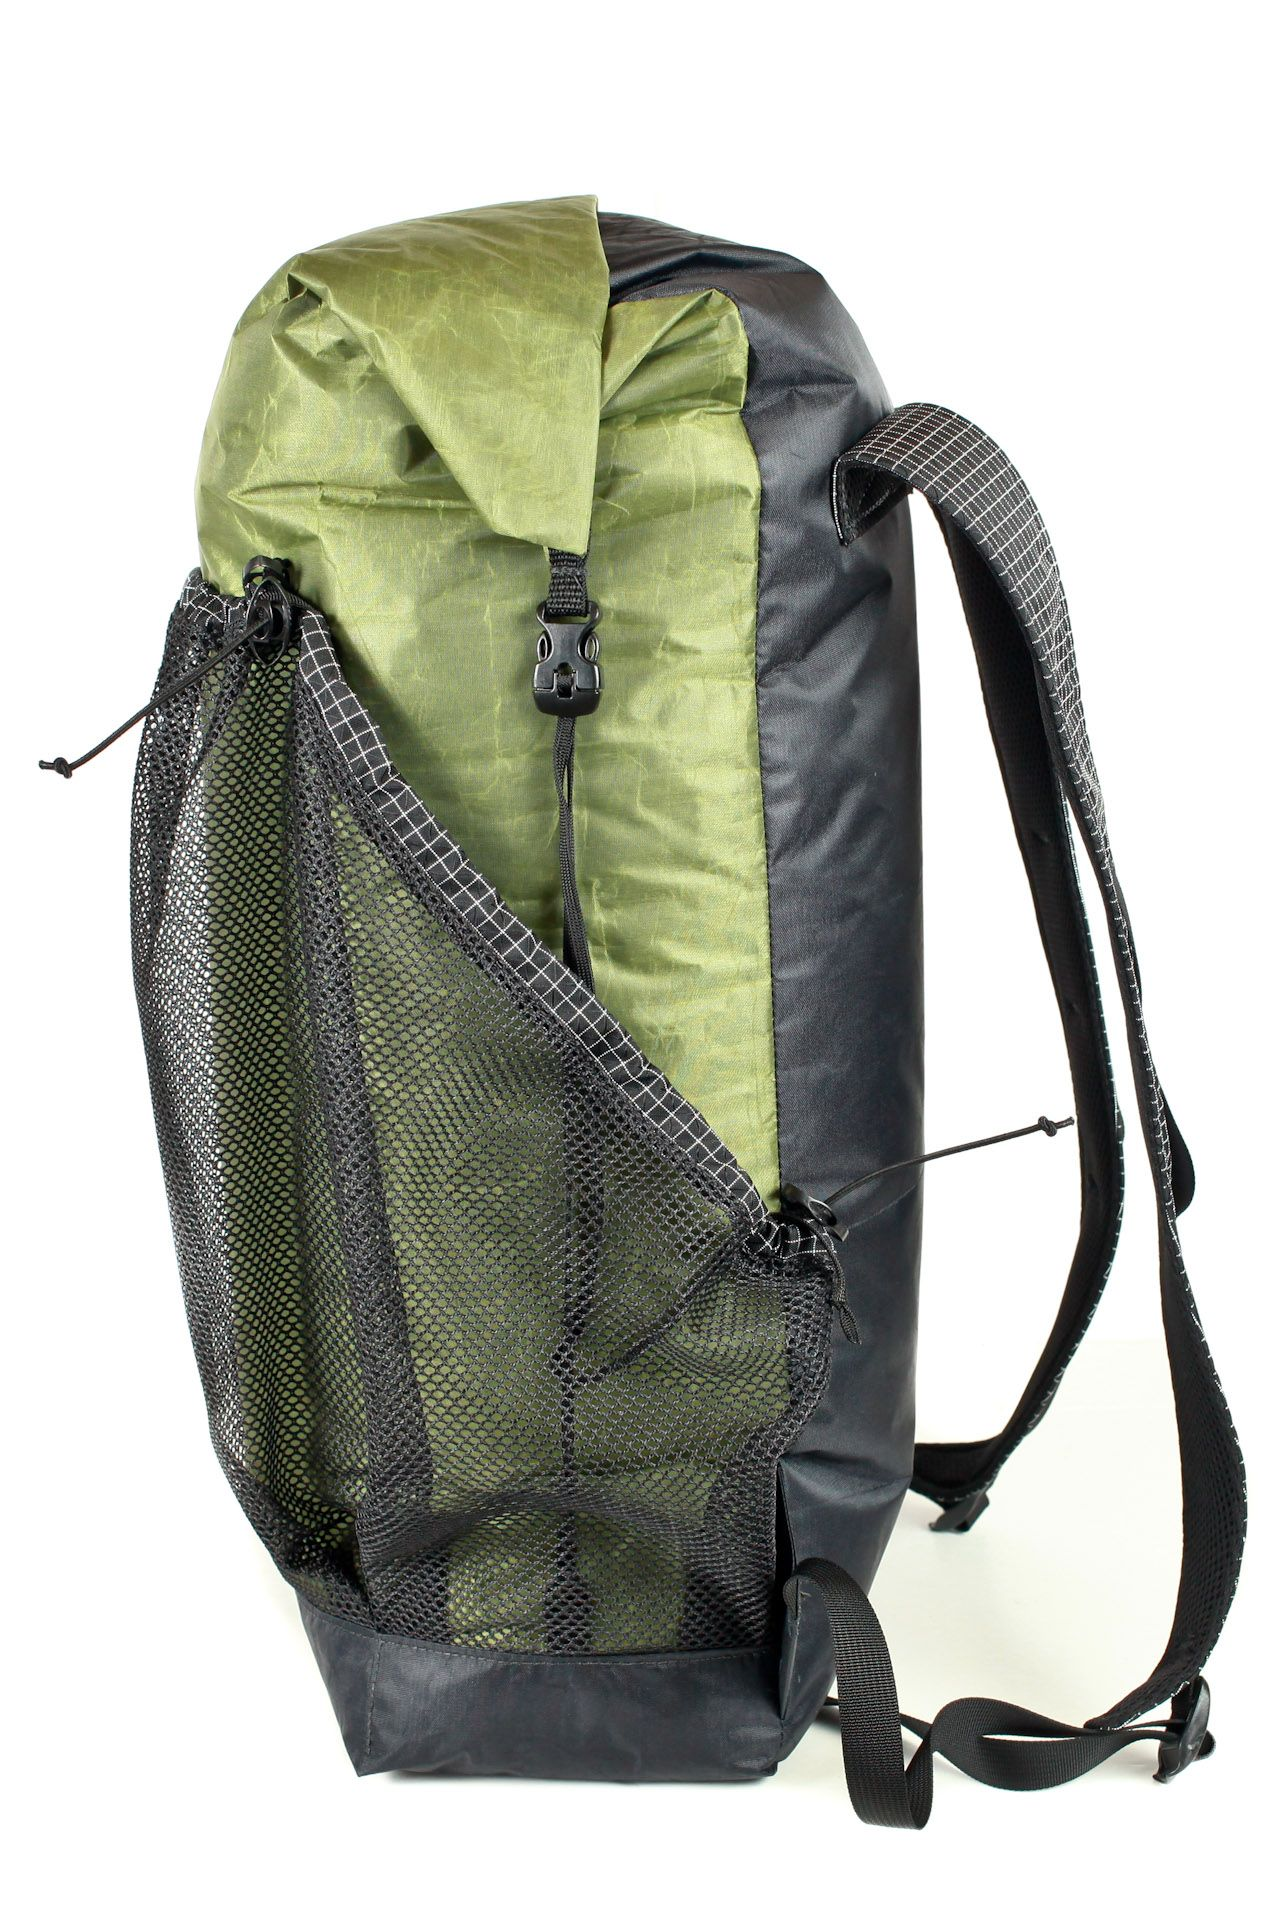 Quickstep Pack Hiking Bag Camping Gear Diy Hiking Gear